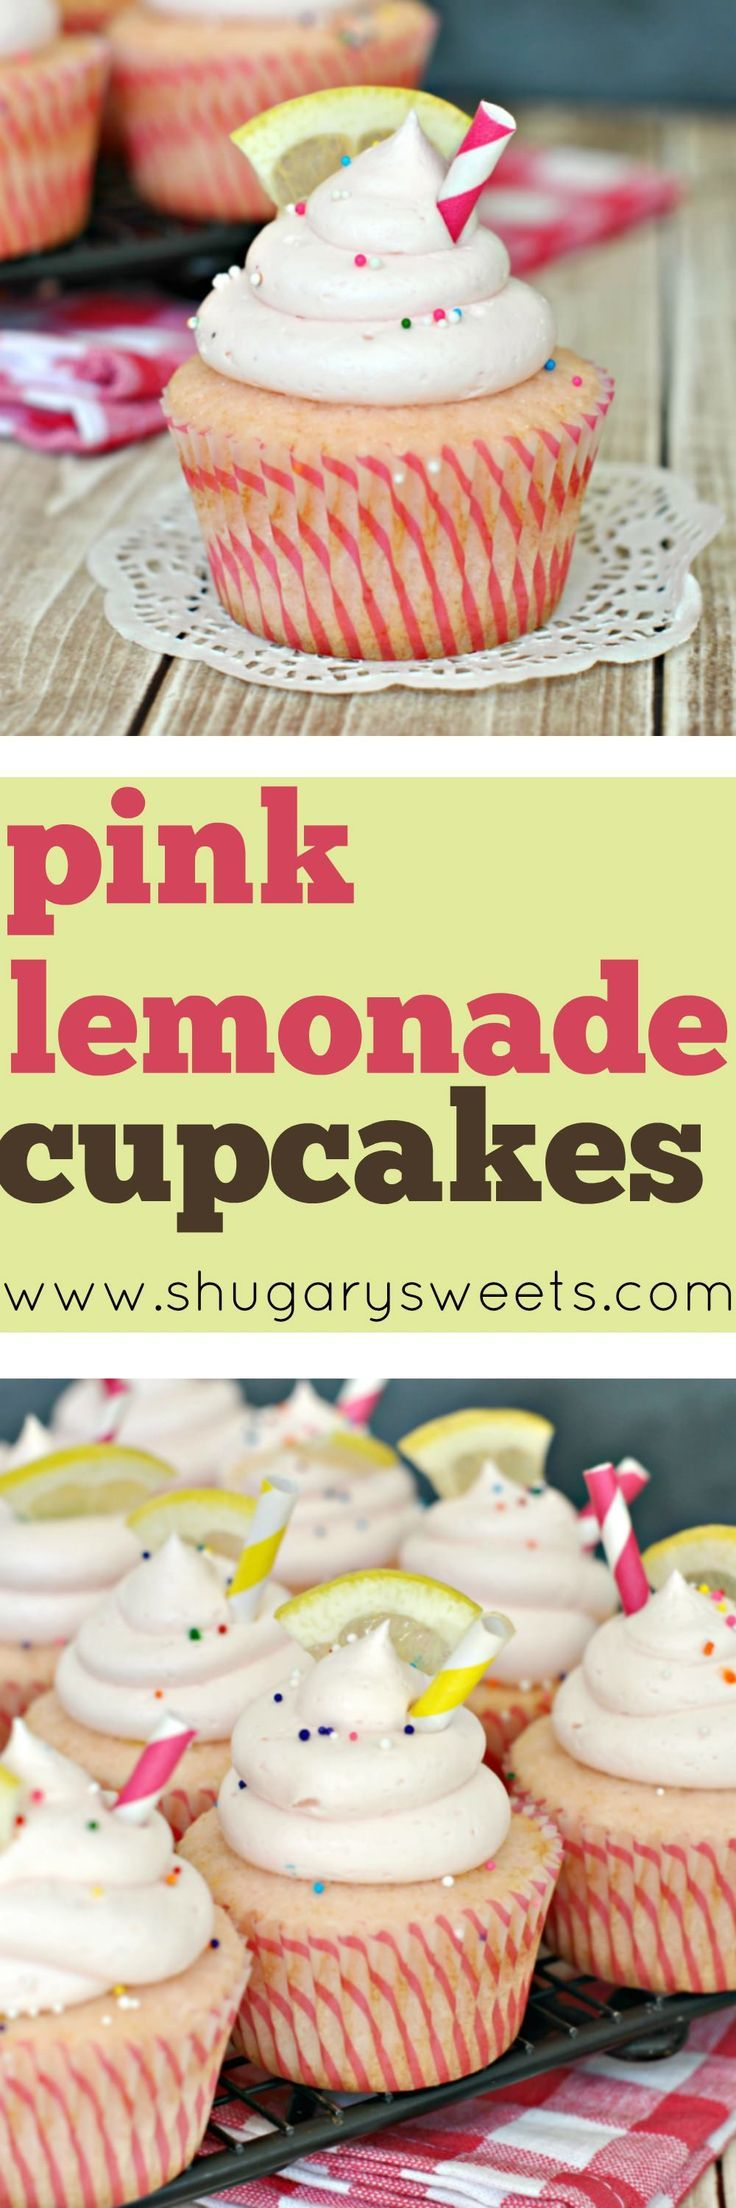 Summer has come to an end, but we can still enjoy these FUN Pink Lemonade Cupcakes! The soft, from scratch, pink lemonade cupcake is topped with a creamy pink lemonade buttercream frosting. Don't forget the fun garnishes too!